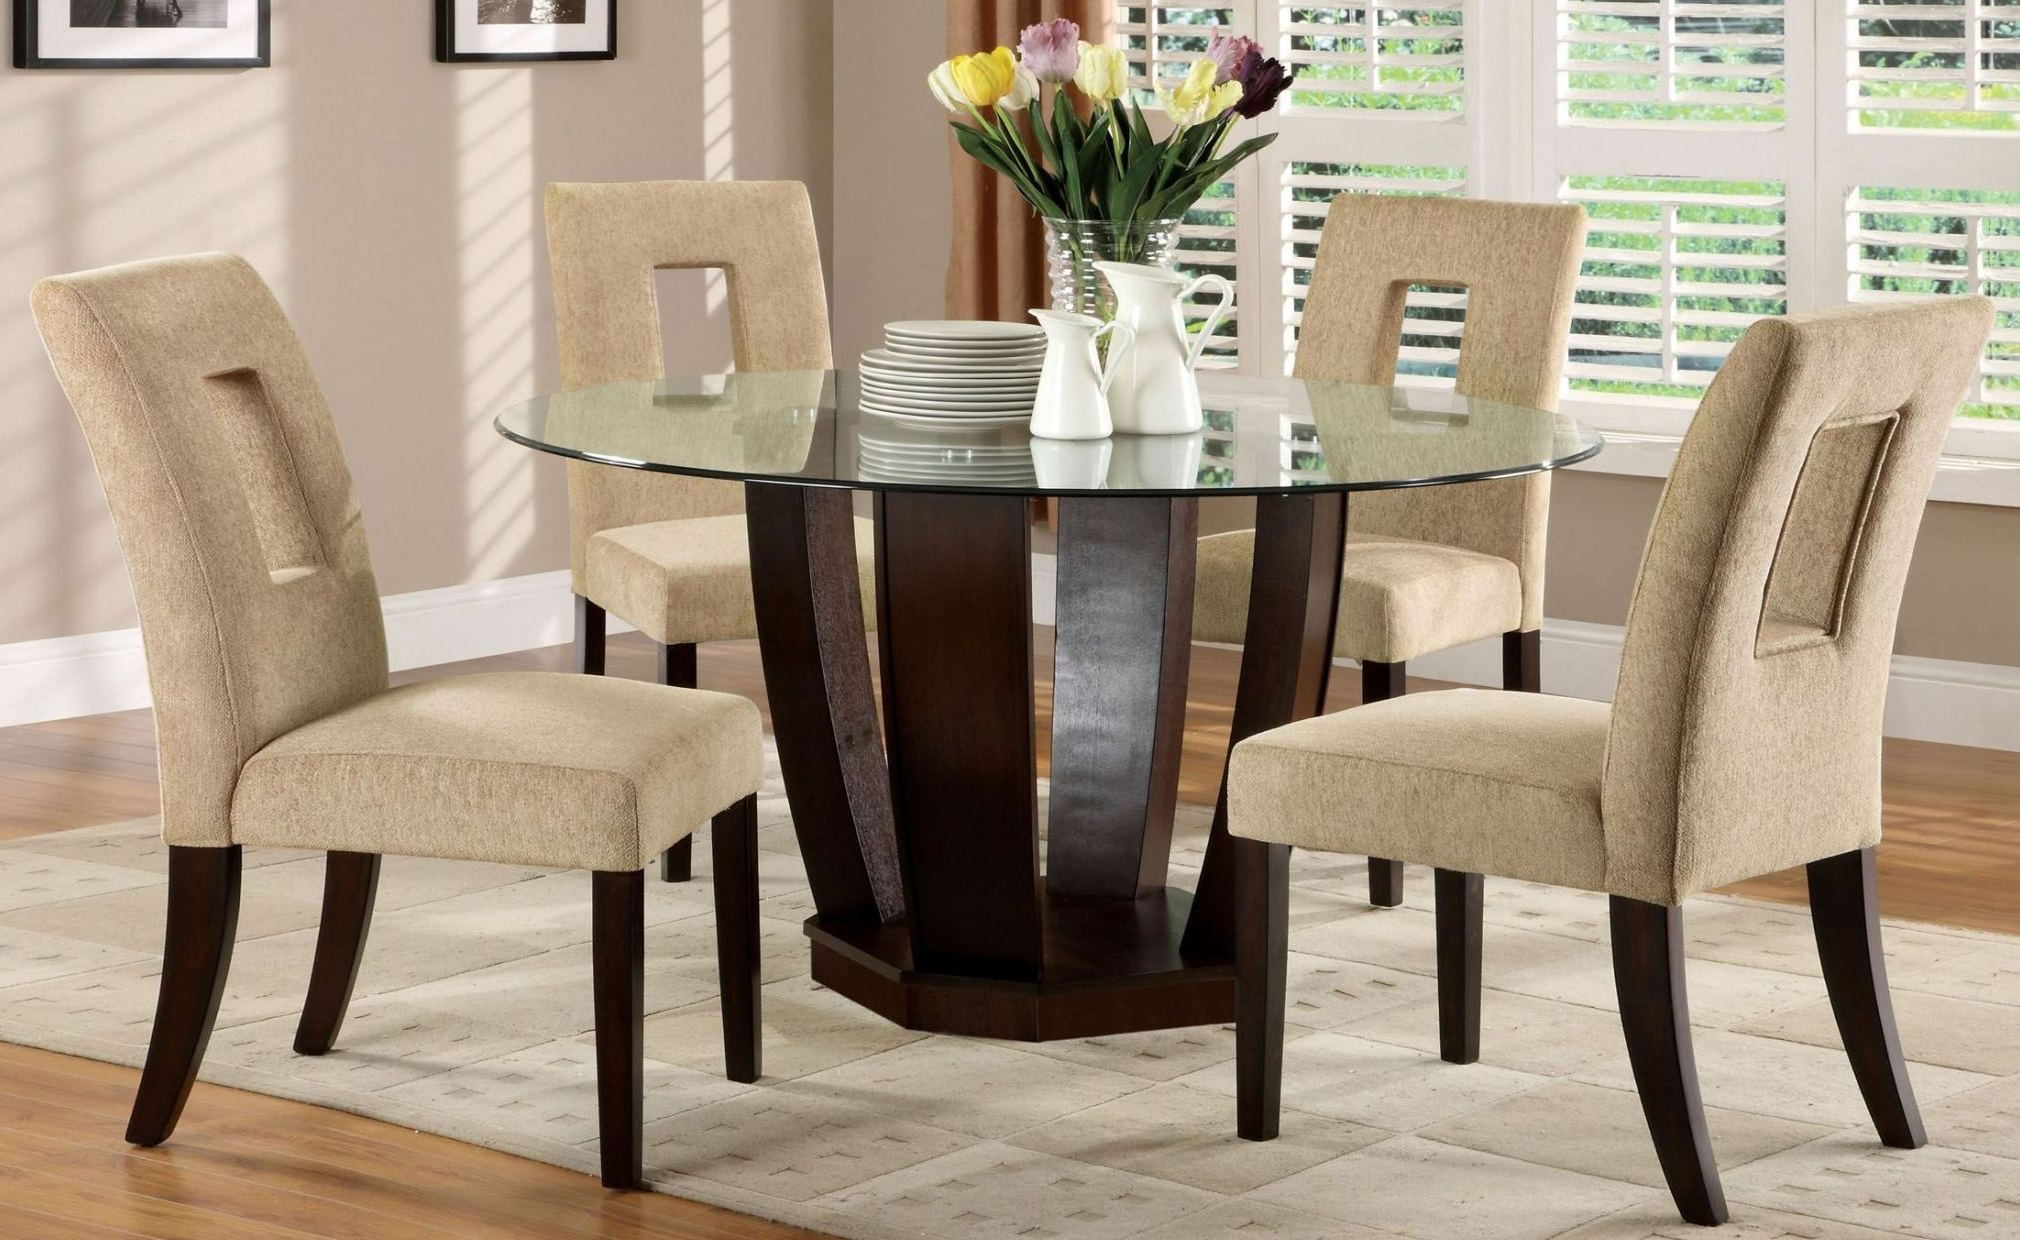 espresso table and chairs cheap chair covers tablecloths west palm i glass top round pedestal dining room